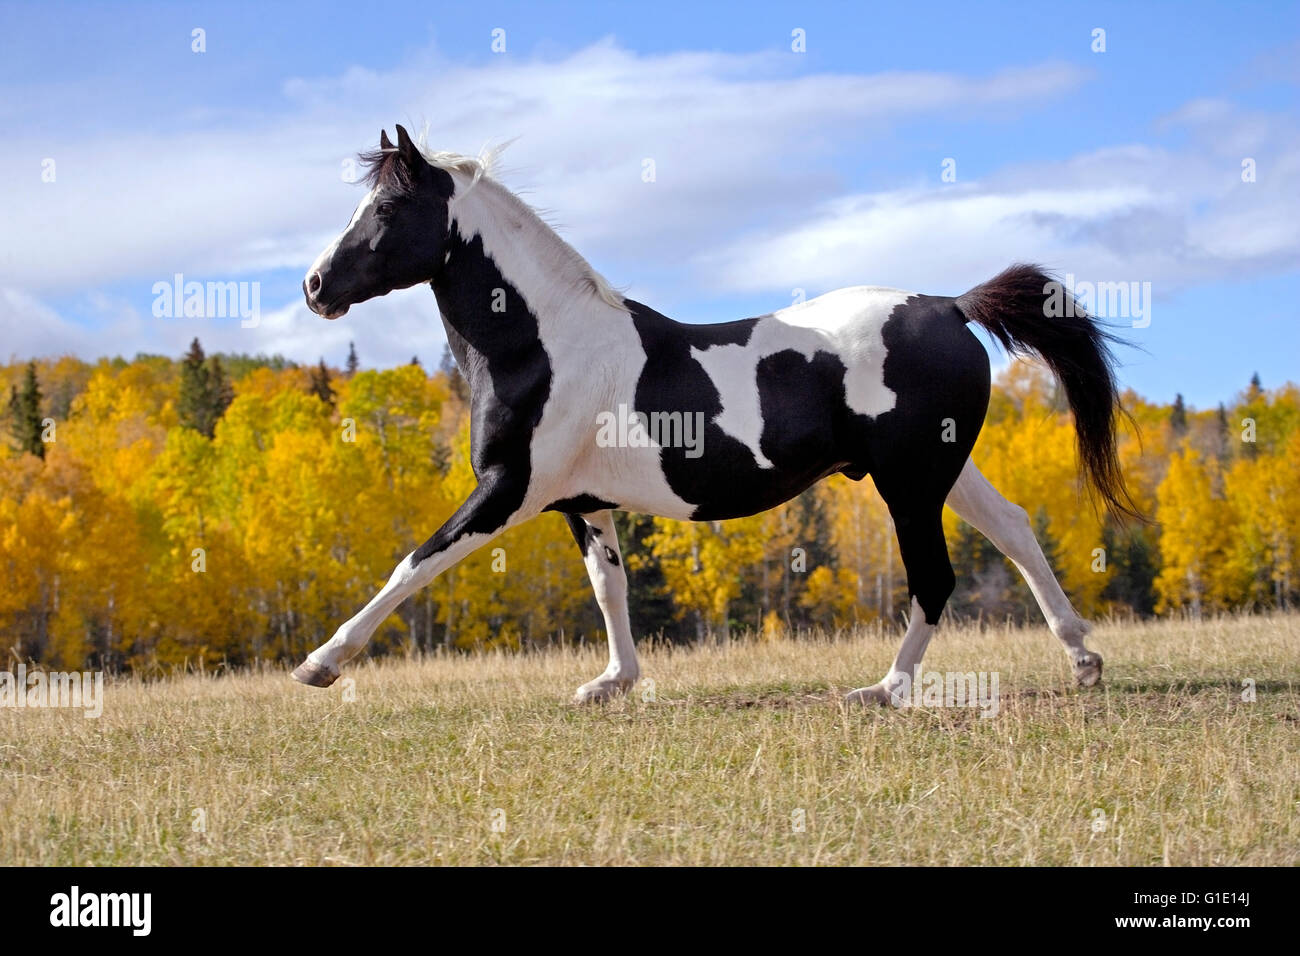 Black and White Tobiano Pinto Stallion running on meadow with trees in autumn colors - Stock Image